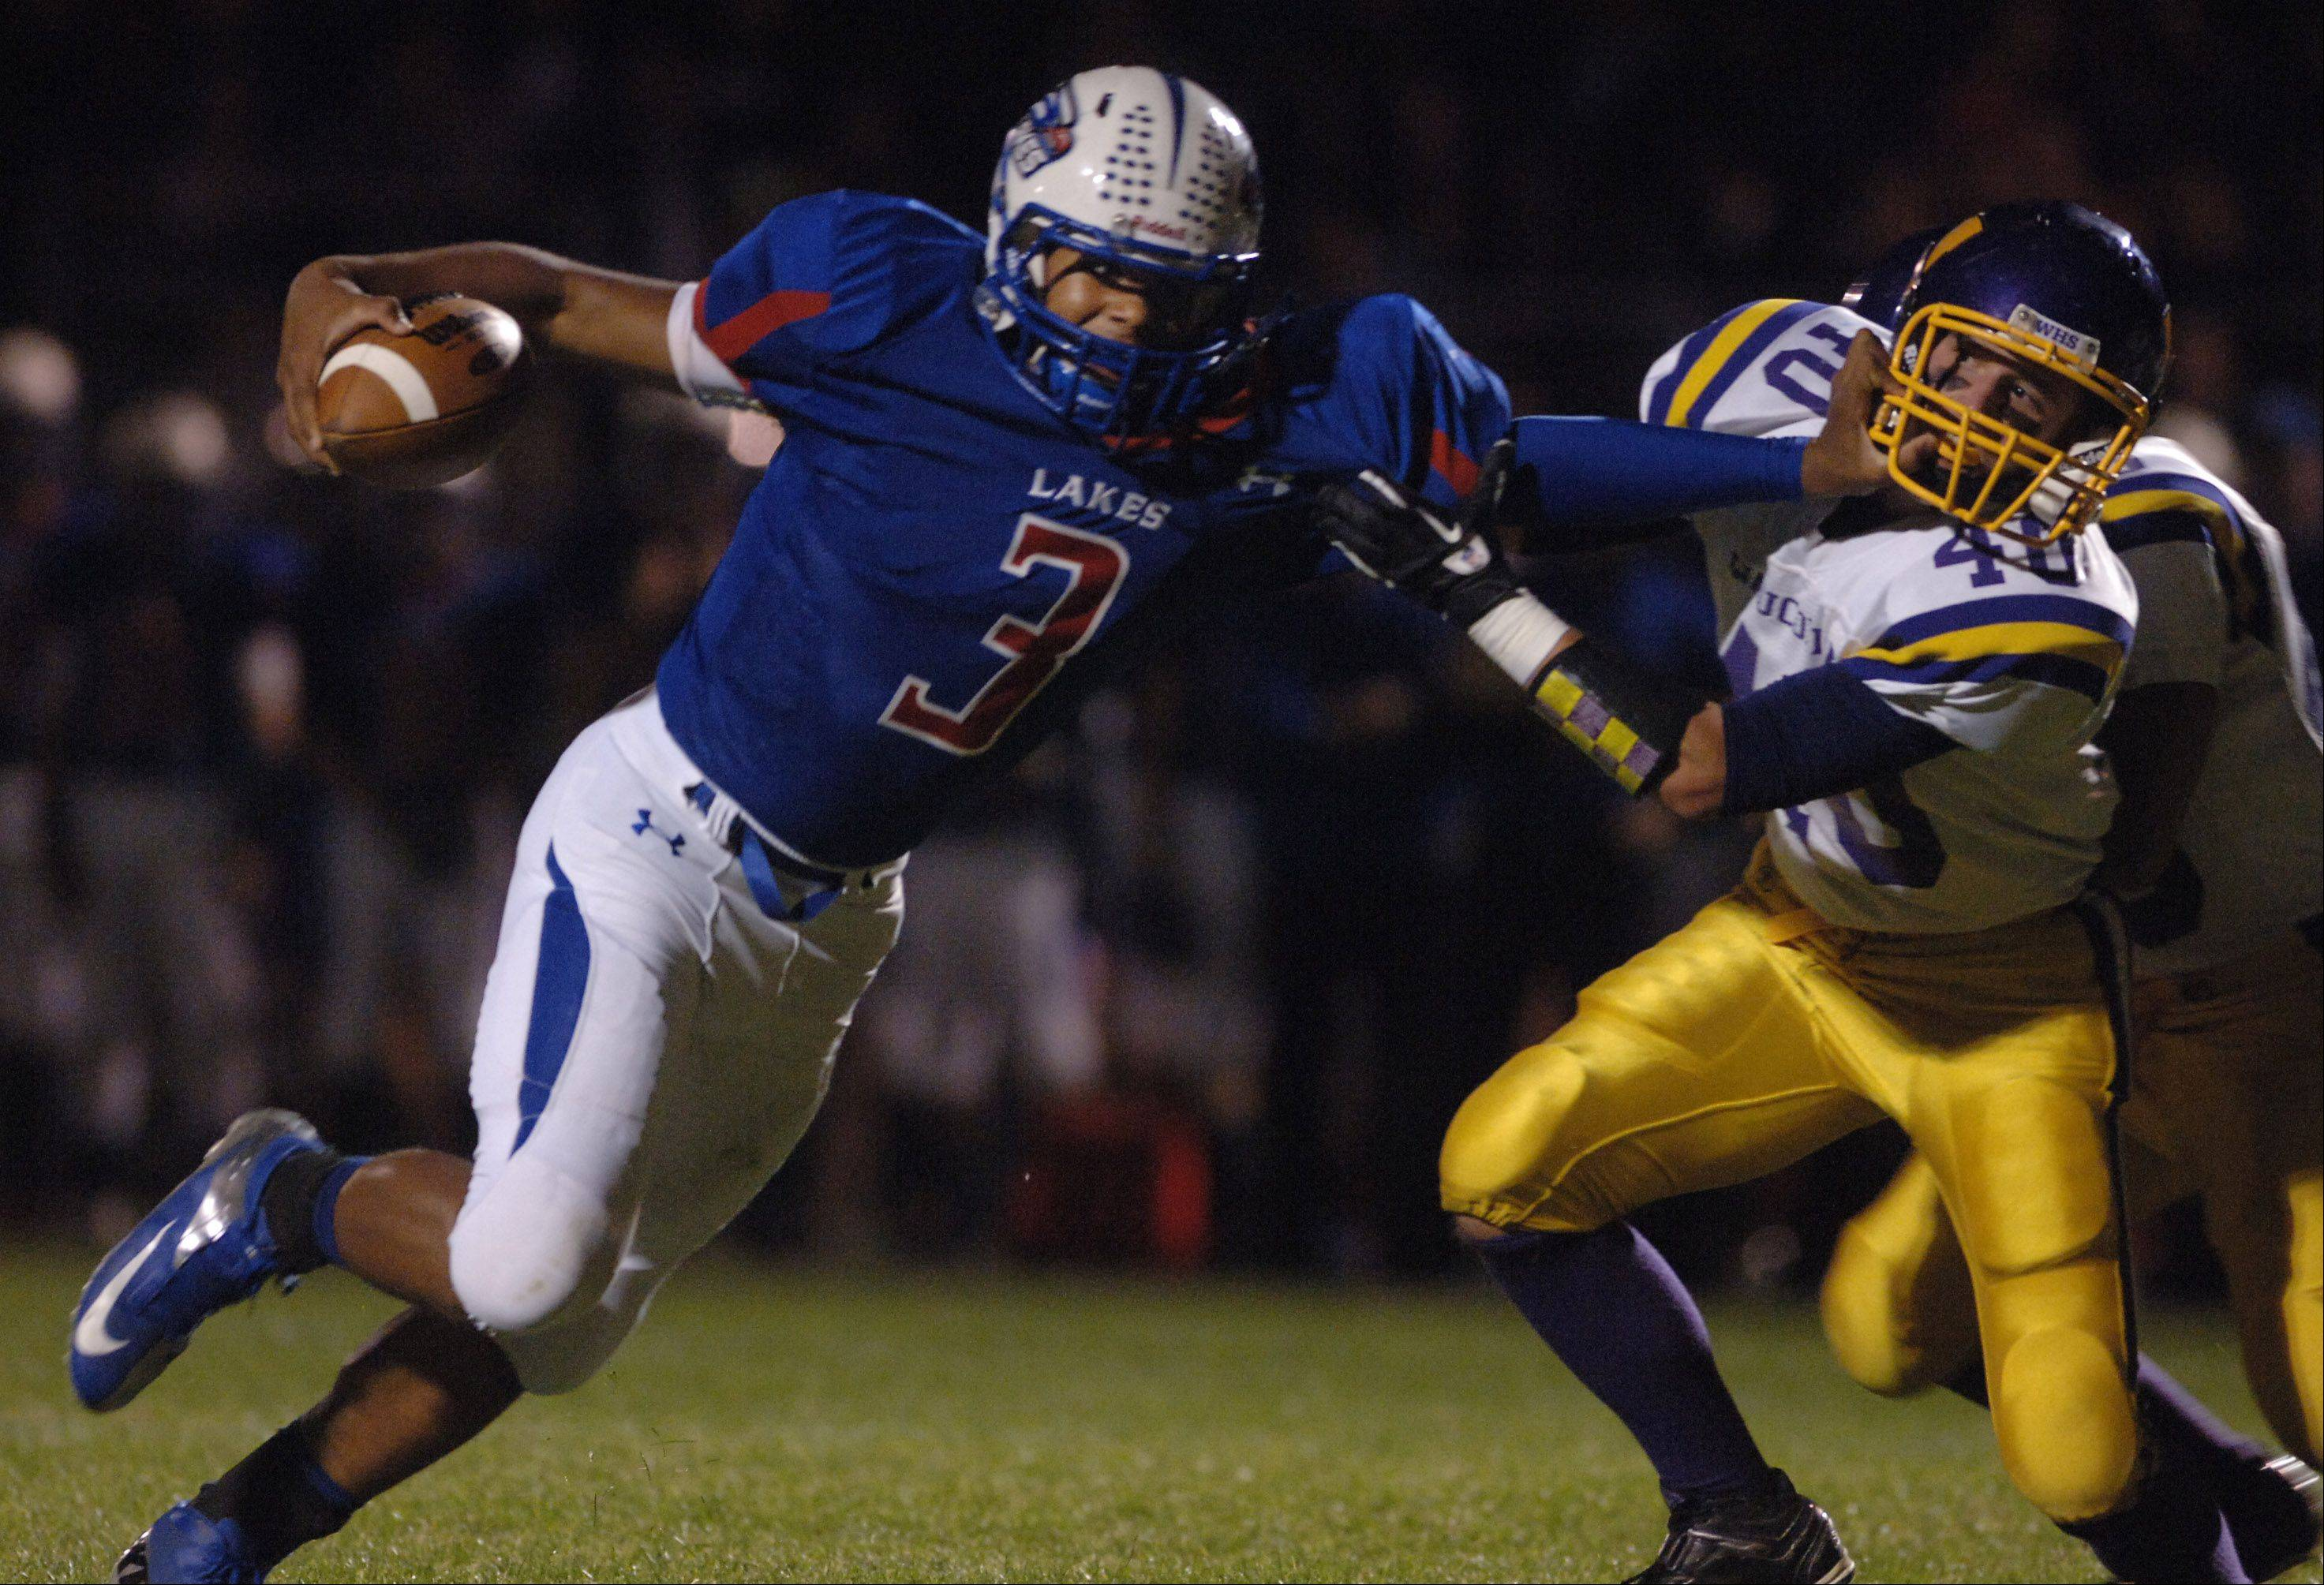 Lakes' T. J. Edwards, 3, stiff-arms Wauconda's Elliot Hill during a running play Friday in Lake Villa.